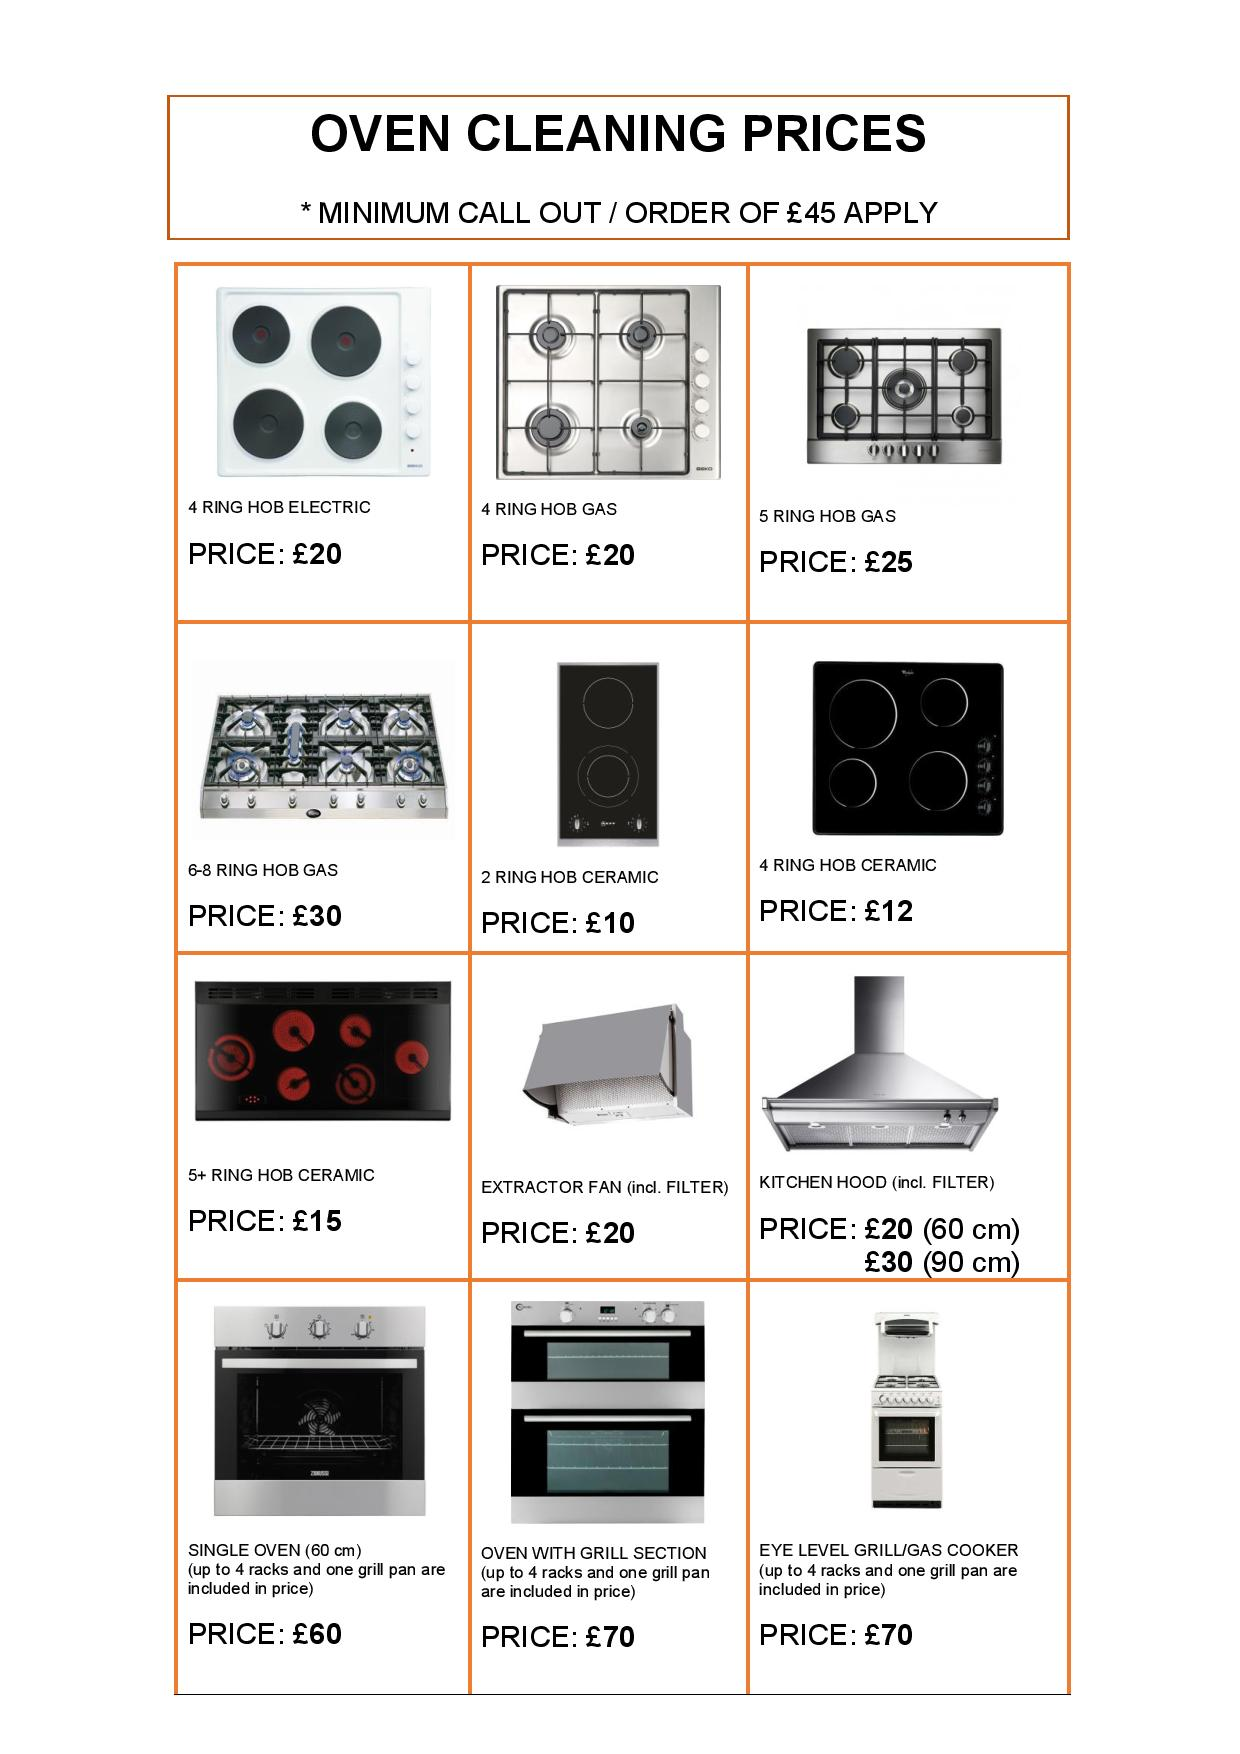 OVEN CLEANING PRICES PAGE 1